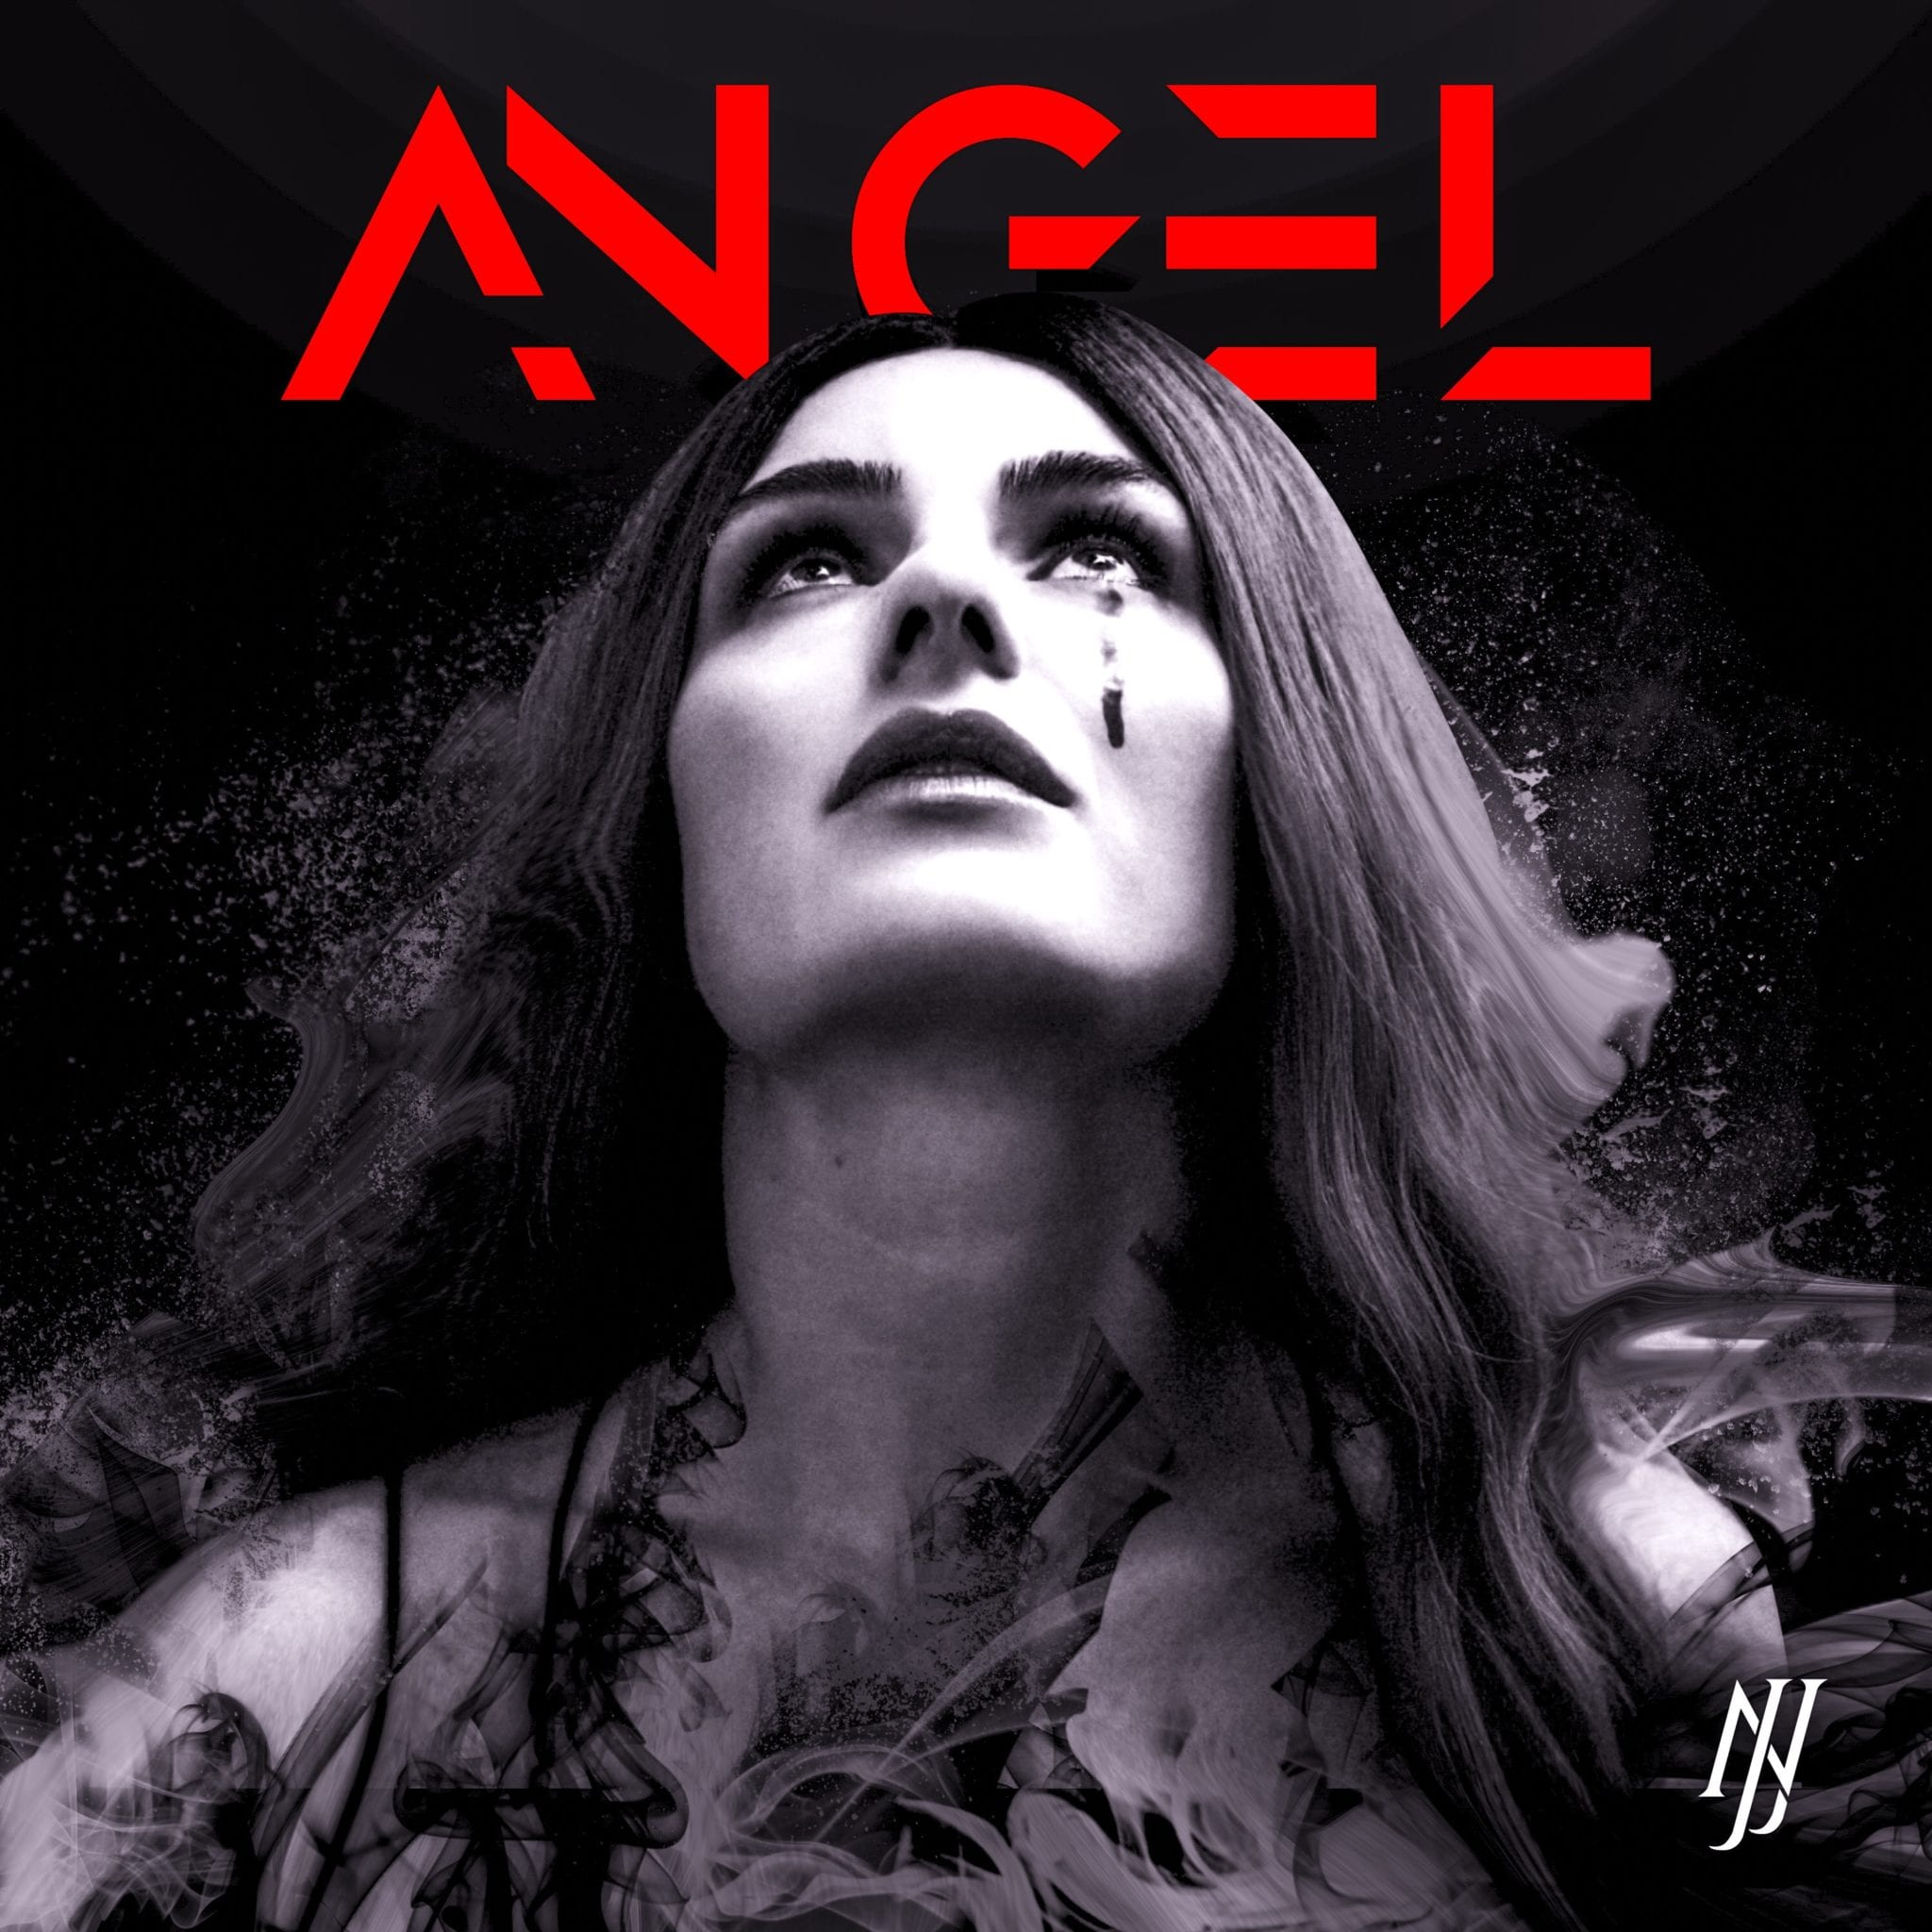 ANGELCOVER